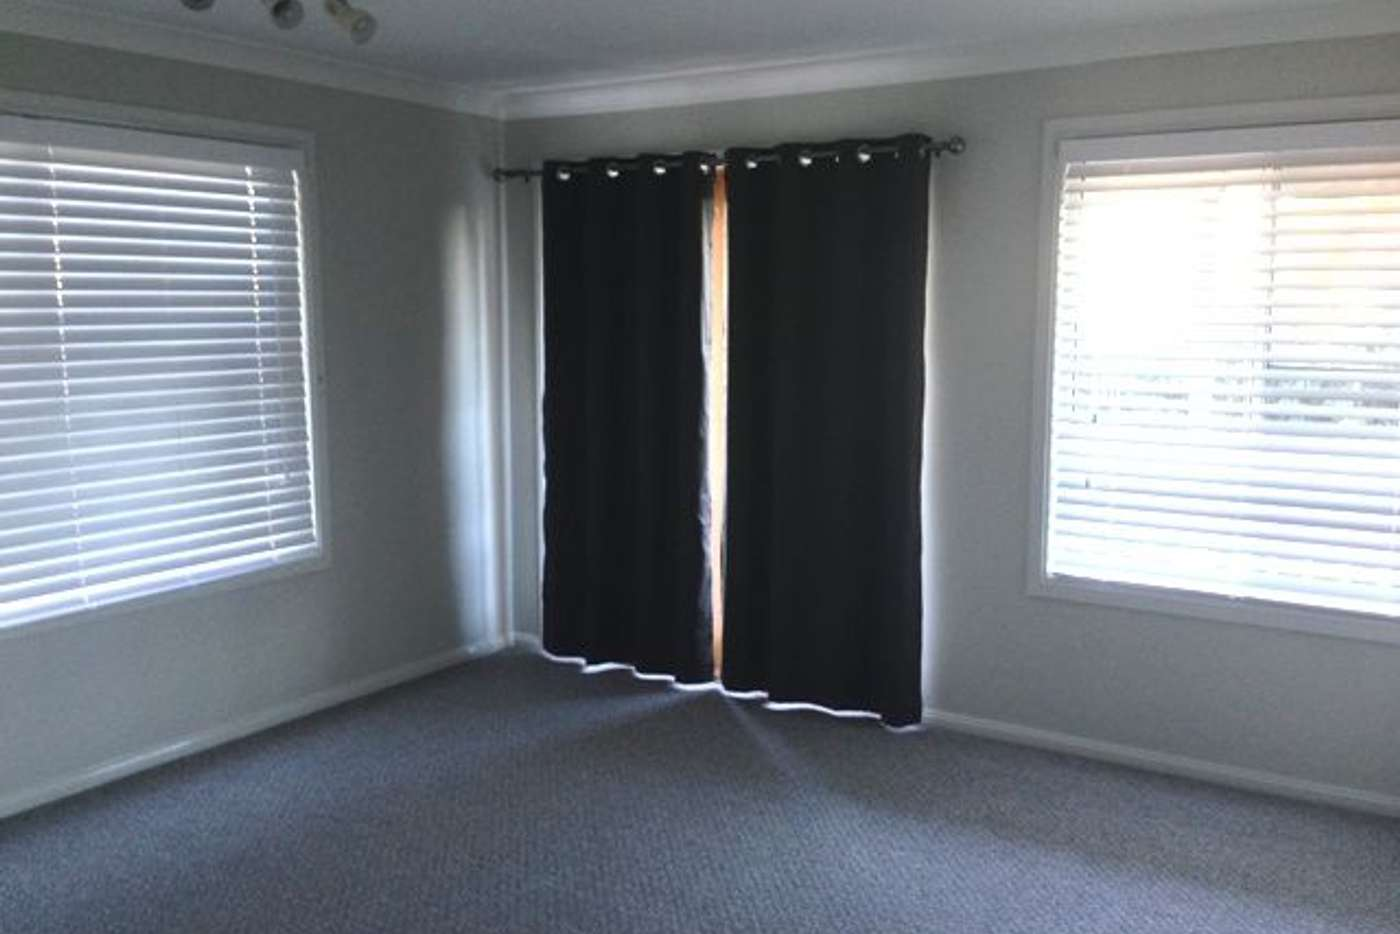 Seventh view of Homely house listing, 103 Keelendi Road, Bellbird NSW 2325